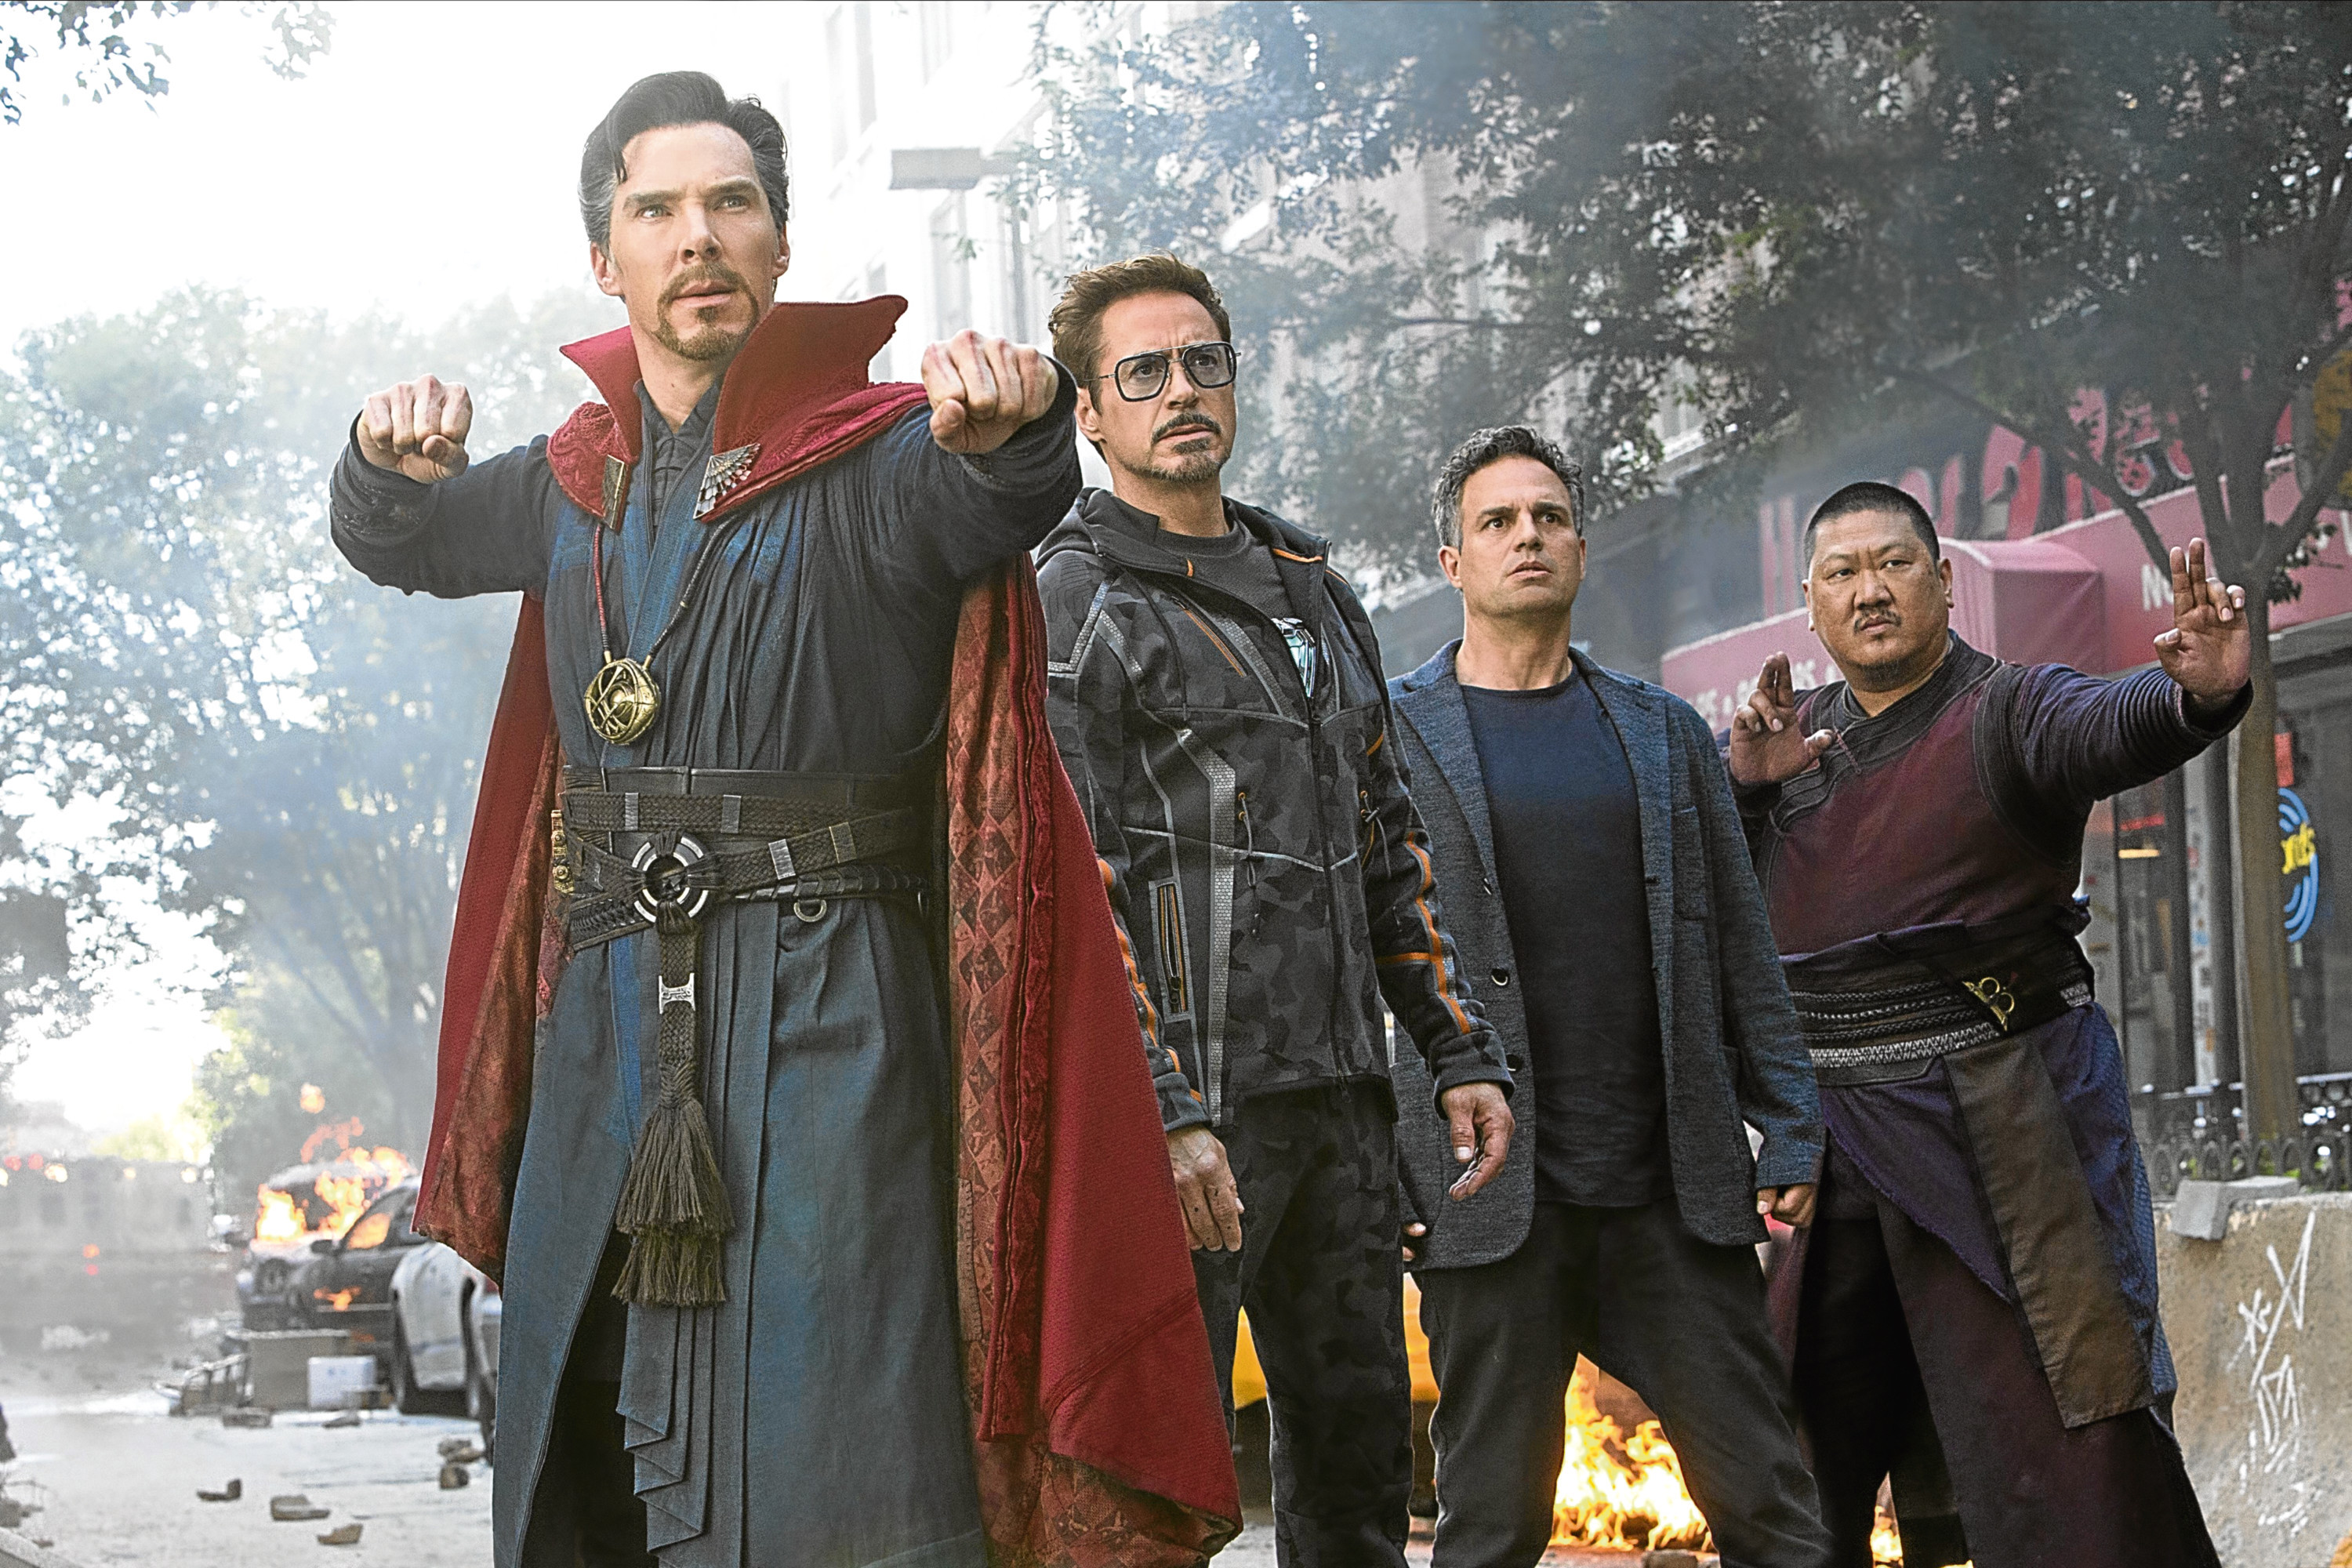 Getting ready to rumble in Avengers: Infinity War are (from left) Benedict Cumberbatch (Doctor Stephen Strange), Robert Downey Jr (Tony Stark/Iron Man), Mark Ruffalo (Bruce Banner/Hulk) and Benedict Wong (Wong) (MARVEL STUDIOS/DISNEY)